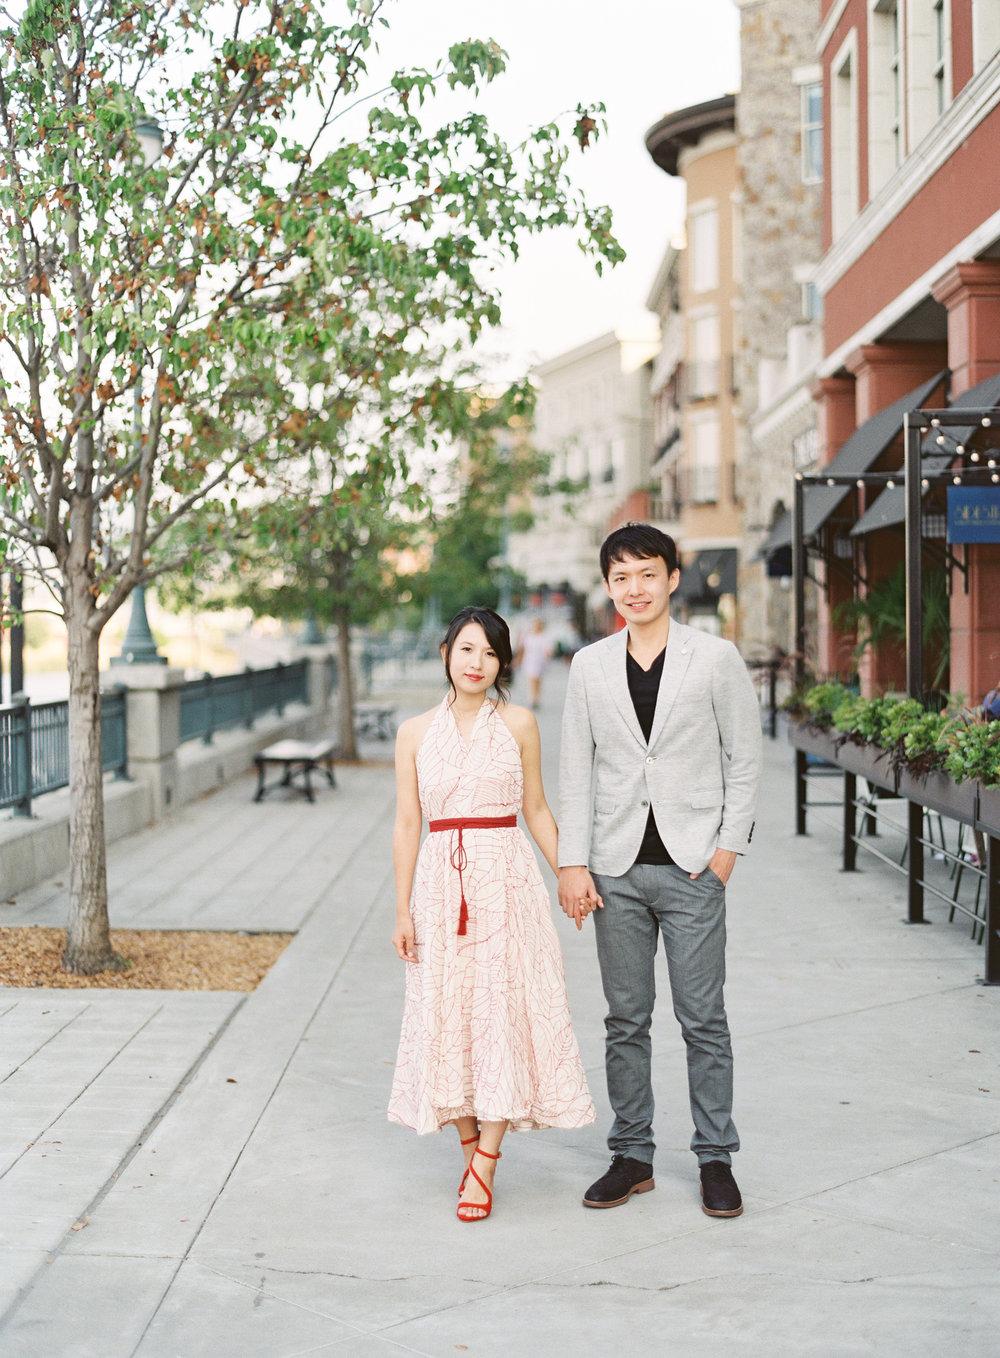 Napa-California-engagement-session-10.jpg